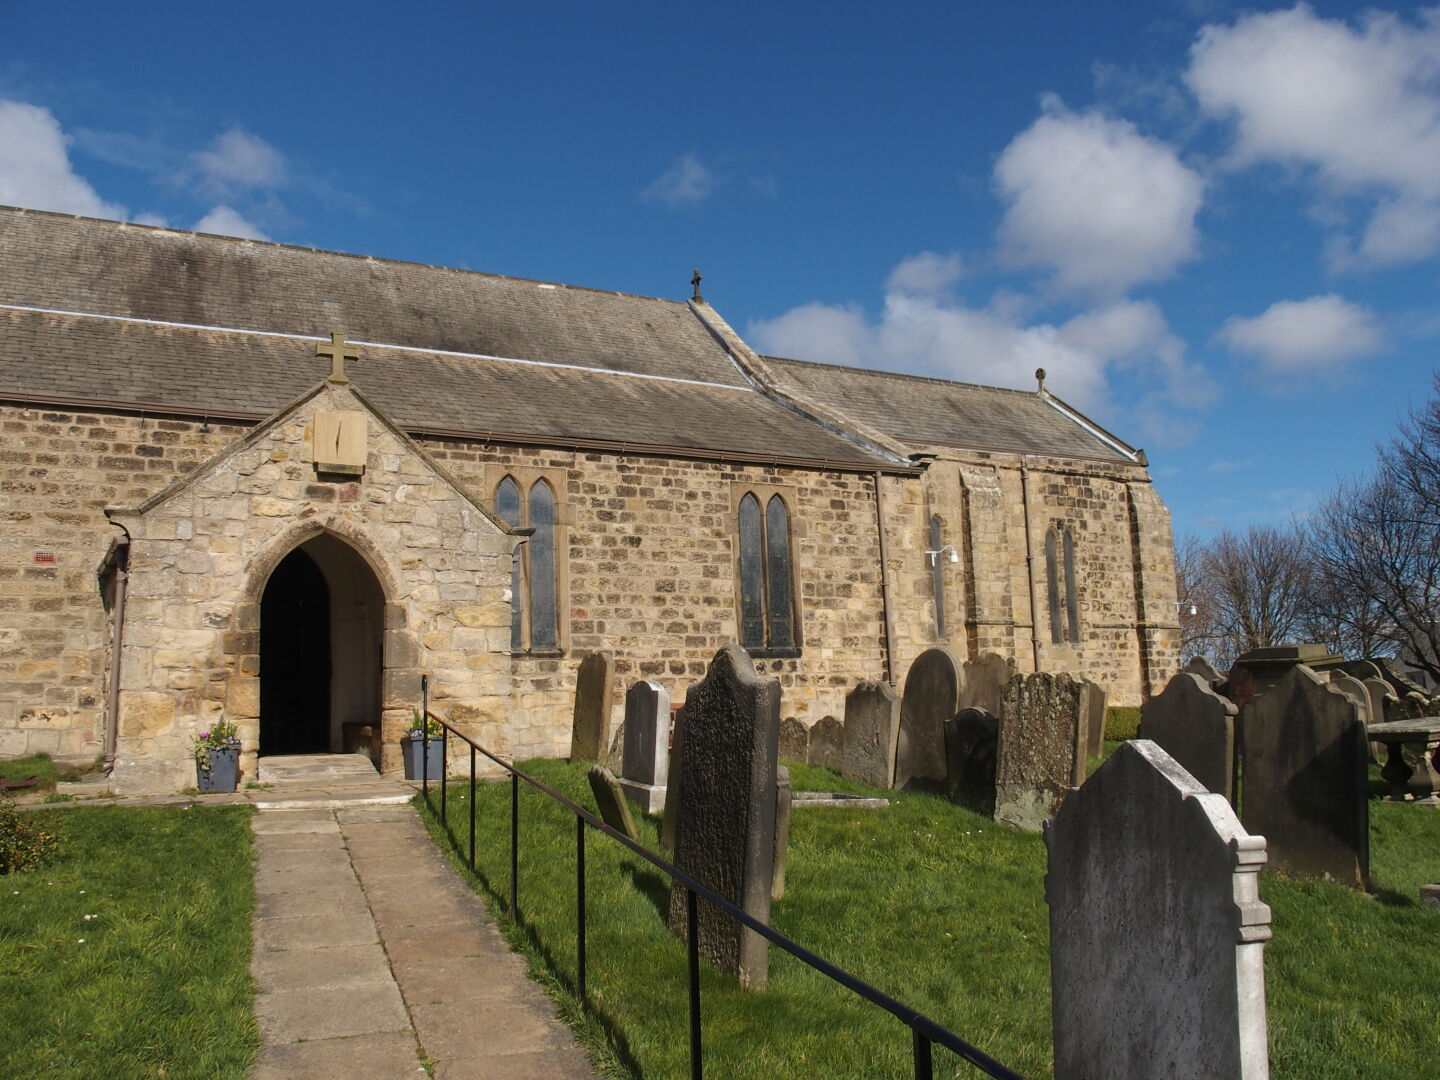 St. Andrews Church in Heddon-on-the-Wall.